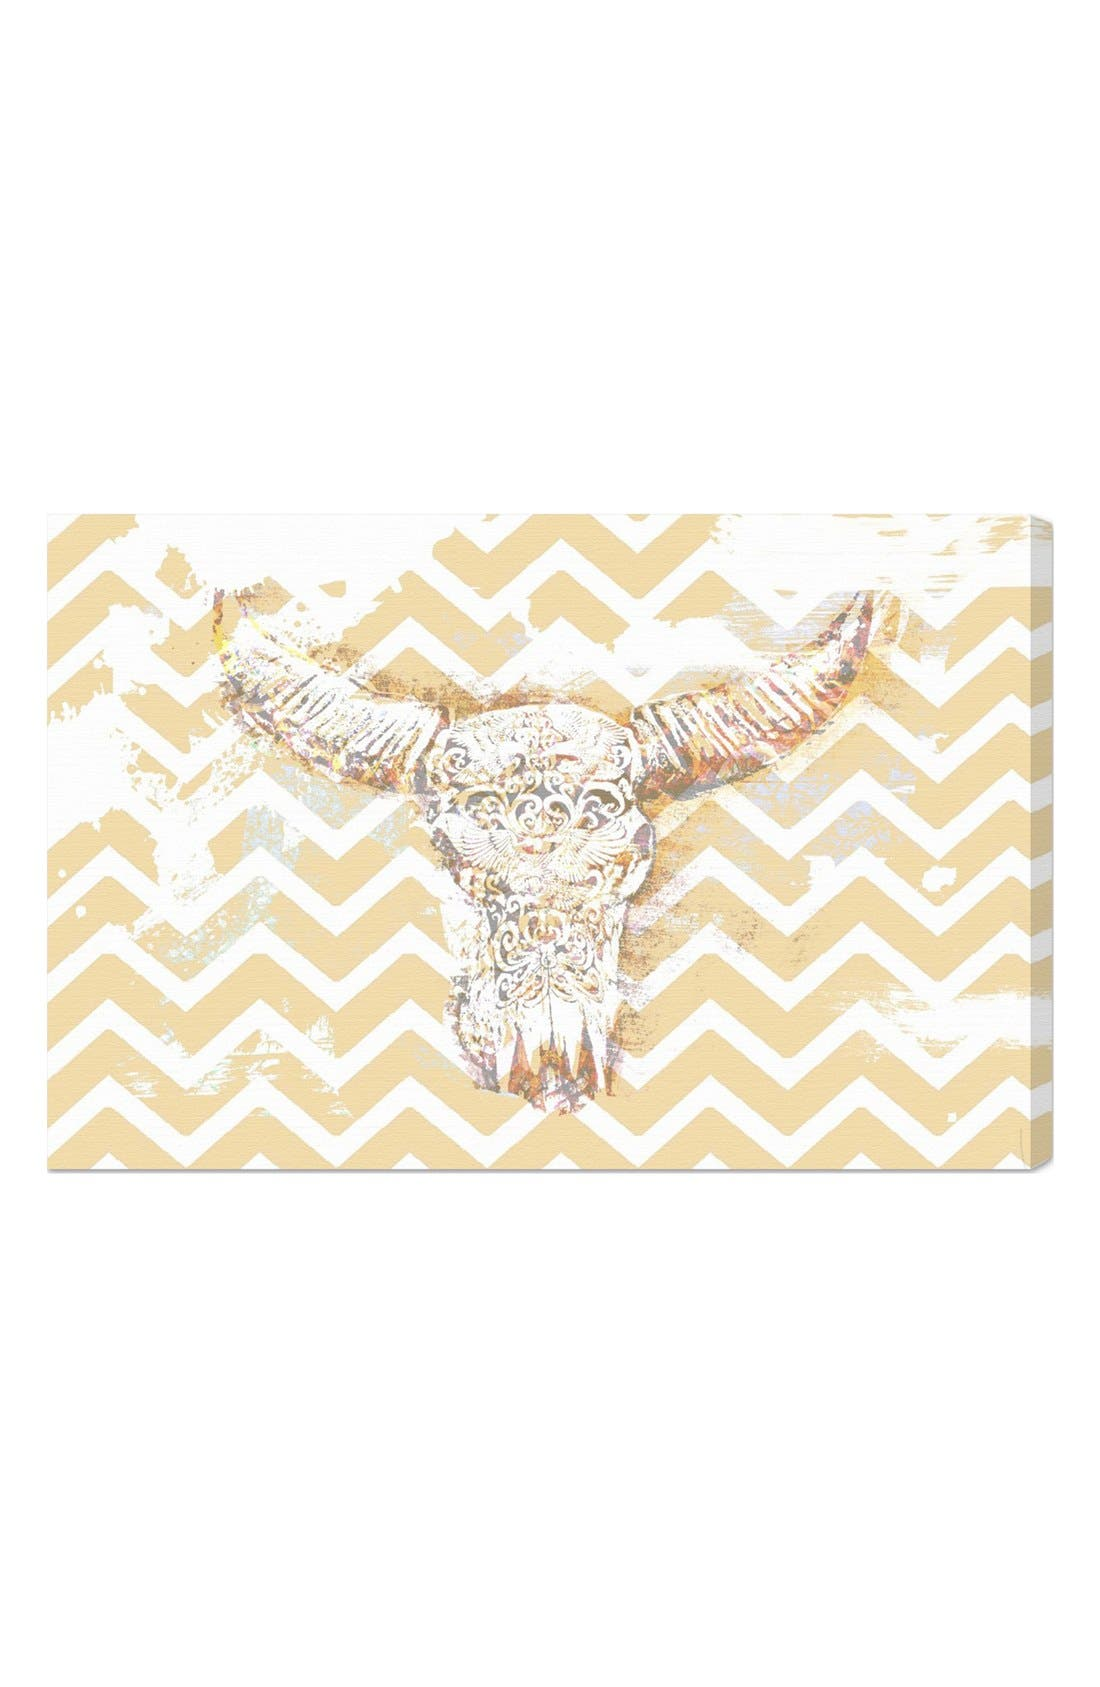 Alternate Image 1 Selected - Oliver Gal 'Chevron Skull' Wall Art